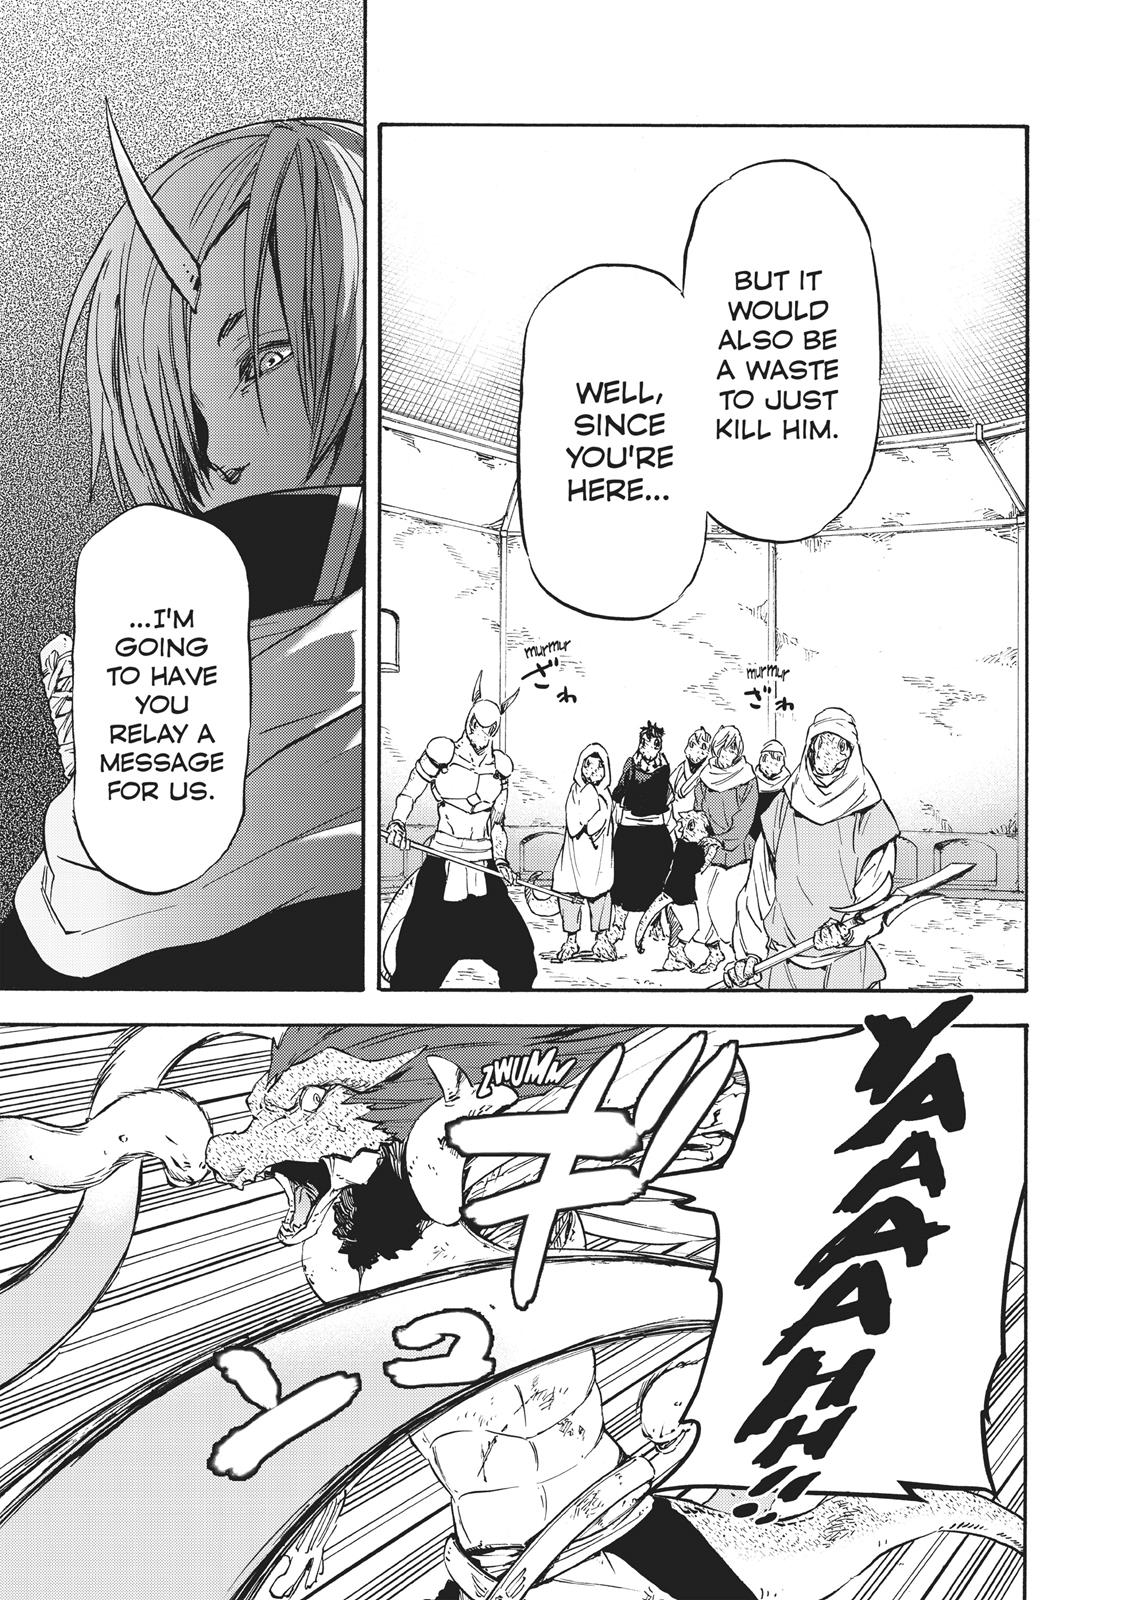 That Time I Got Reincarnated As A Slime, Chapter 21 image 019